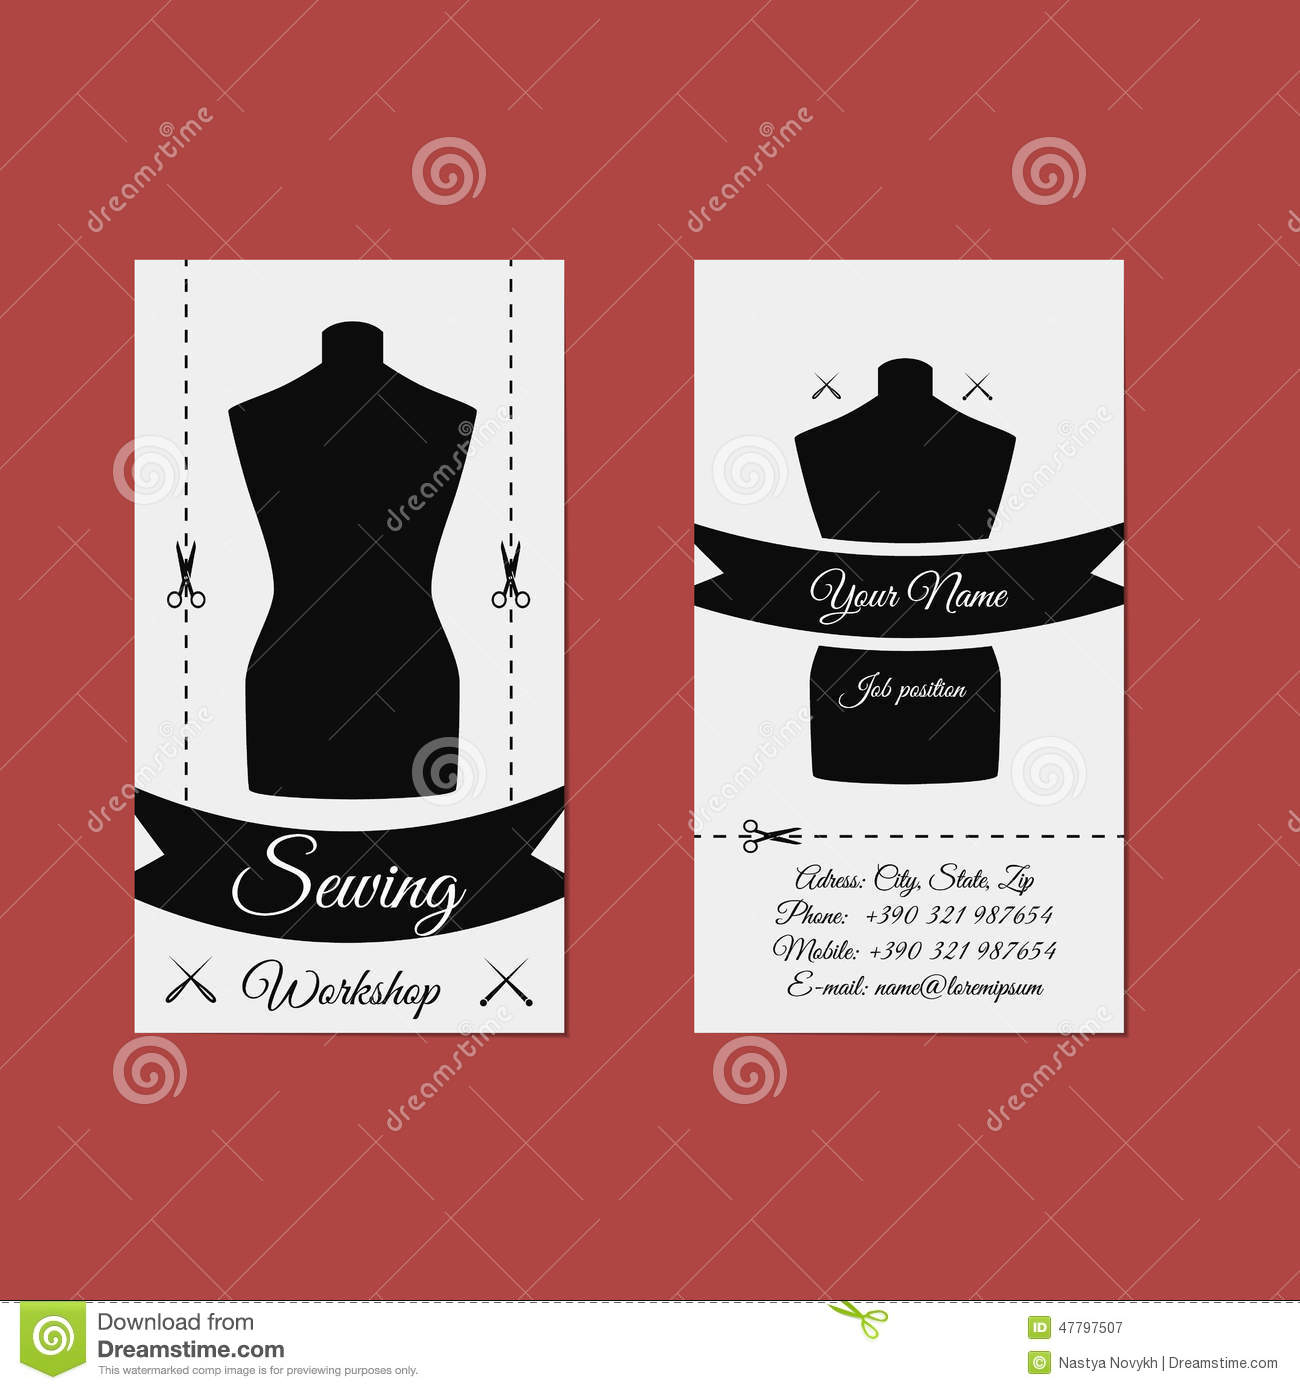 Vector Design Business Card Tailor. Stock Vector - Image